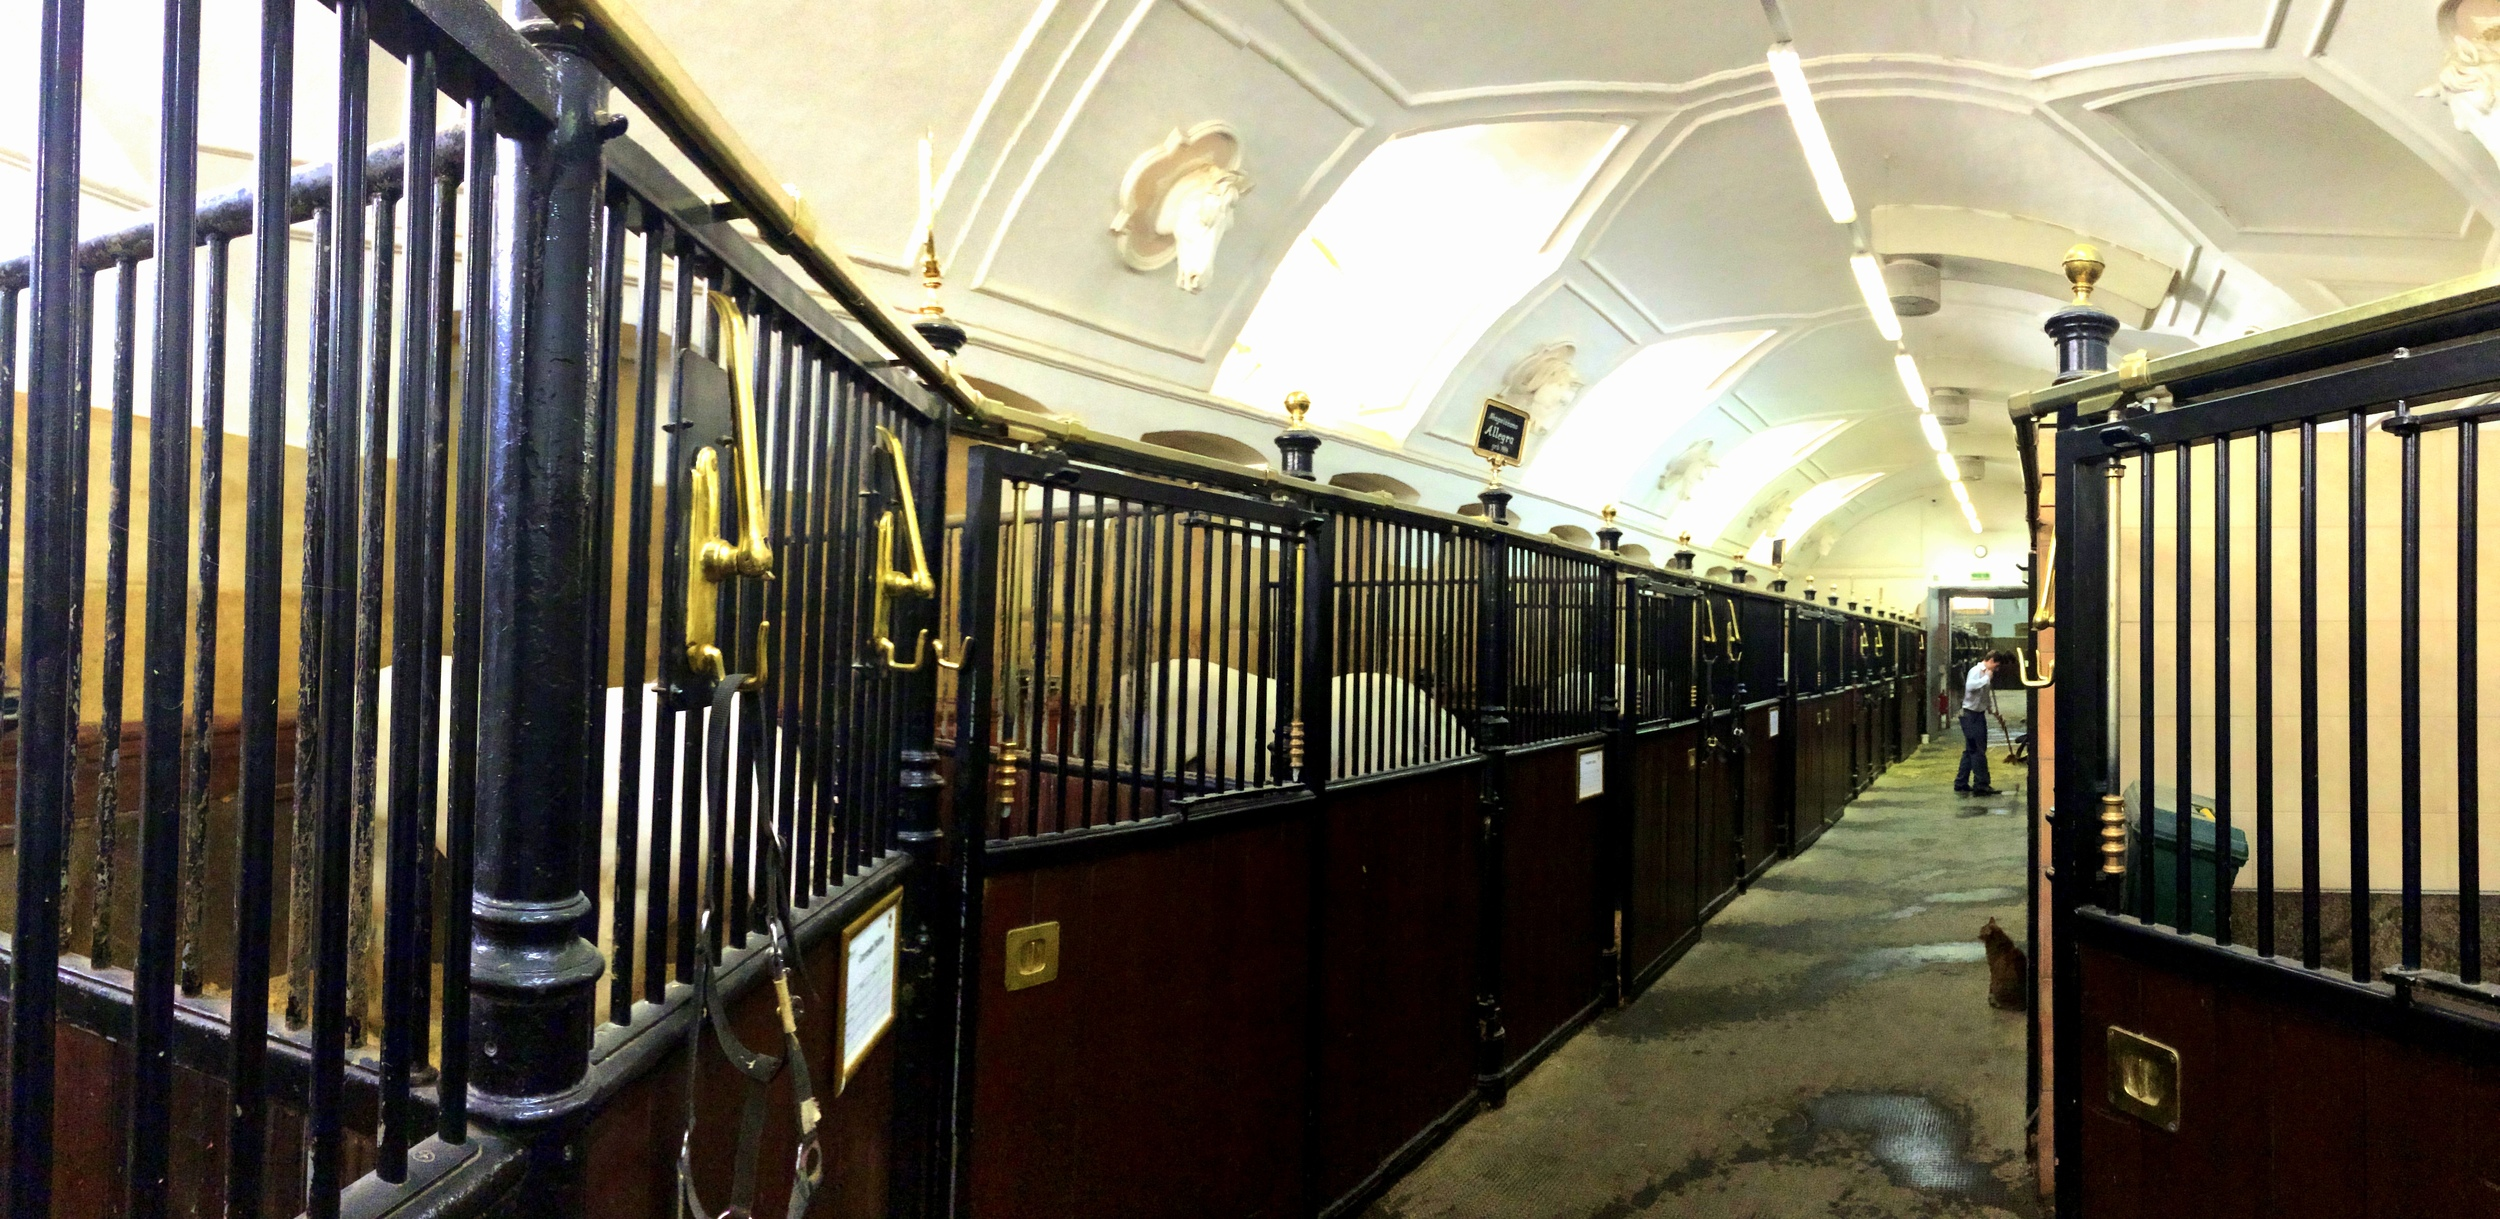 The Stables of the Spanish Riding School in Vienna.